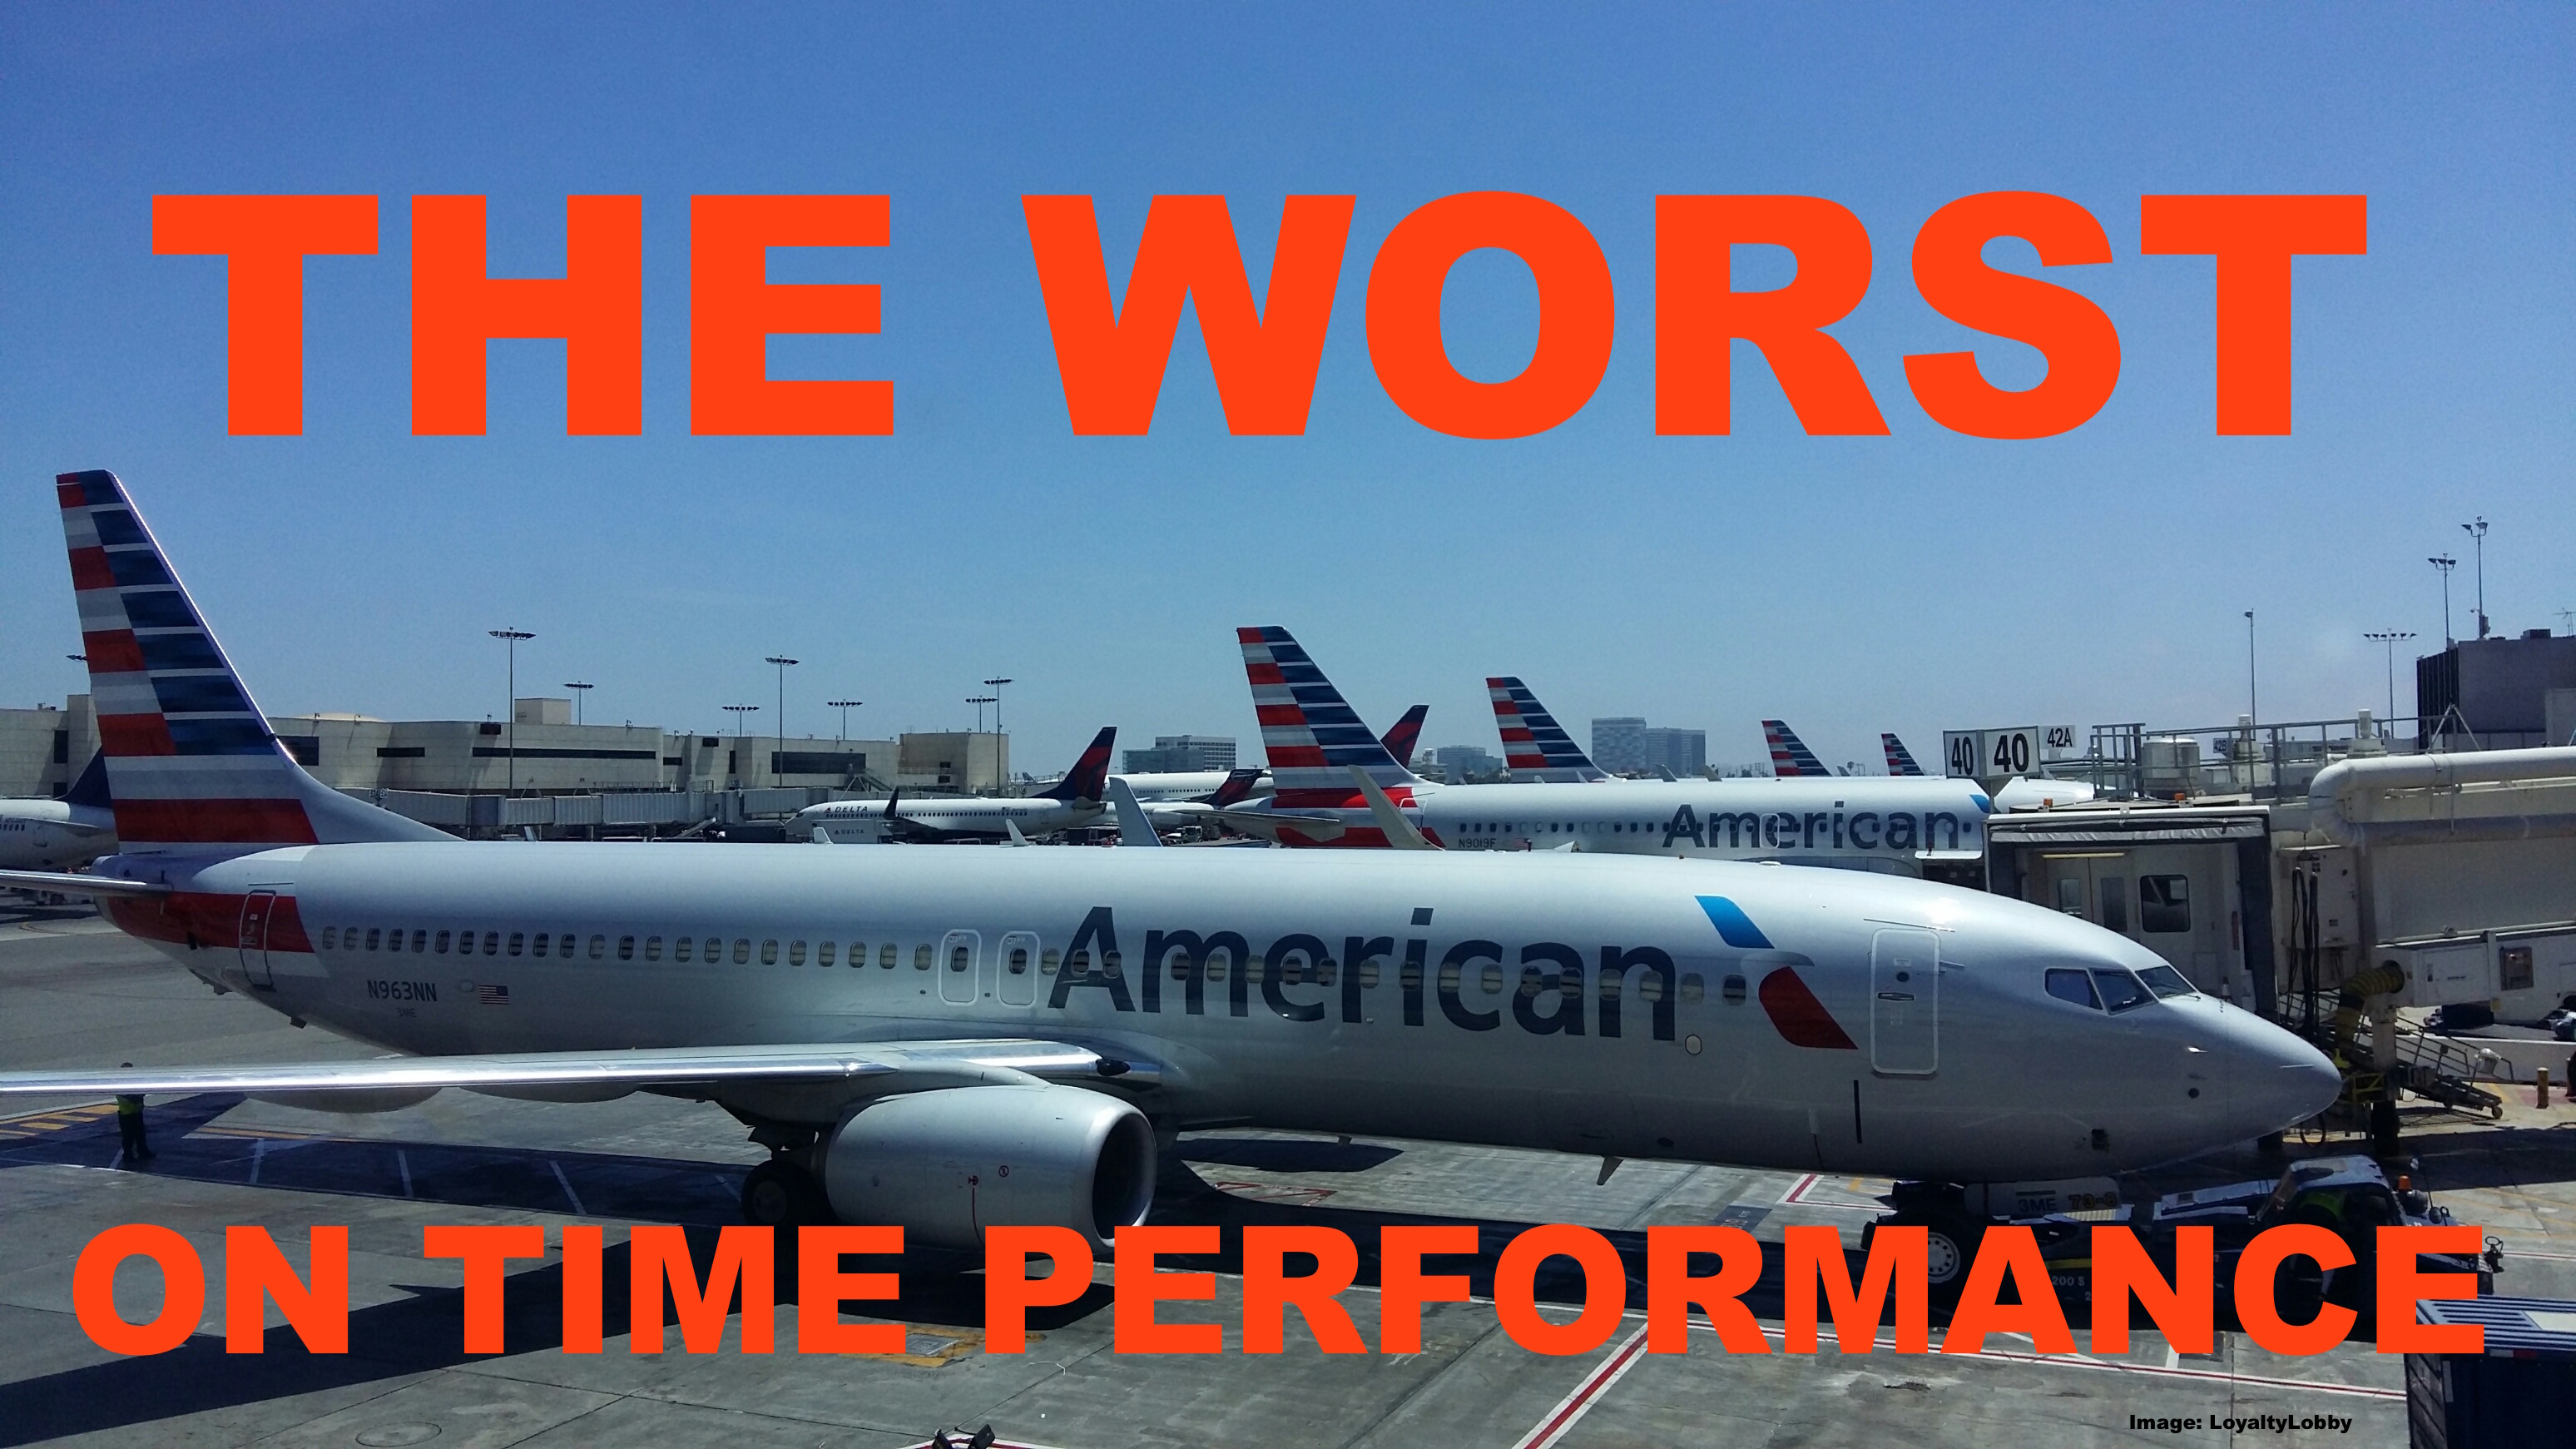 aa airlines customer service